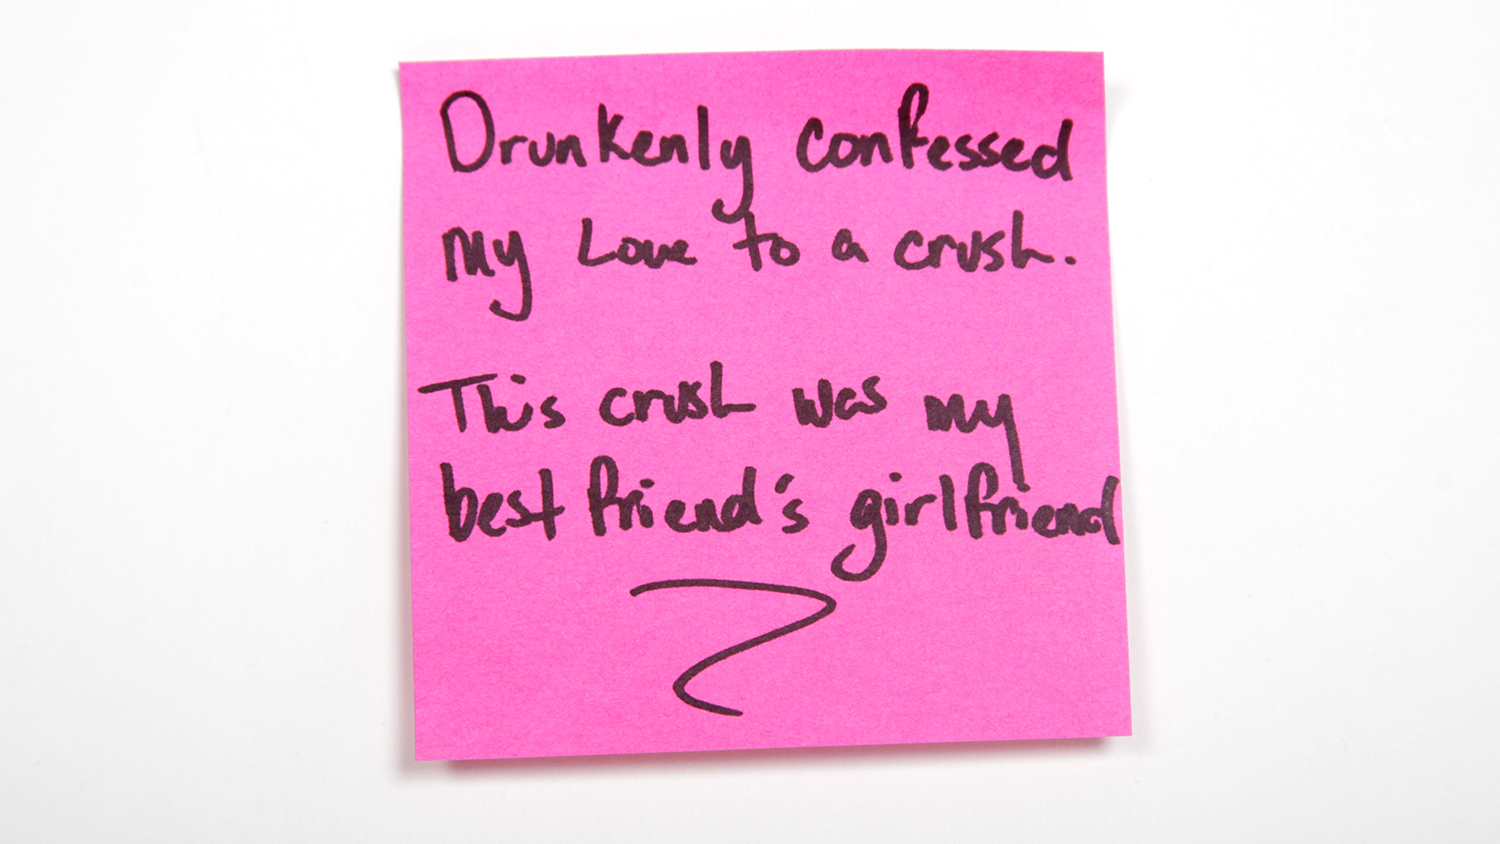 Sticky Notes Drunkenly Confused Love Crush